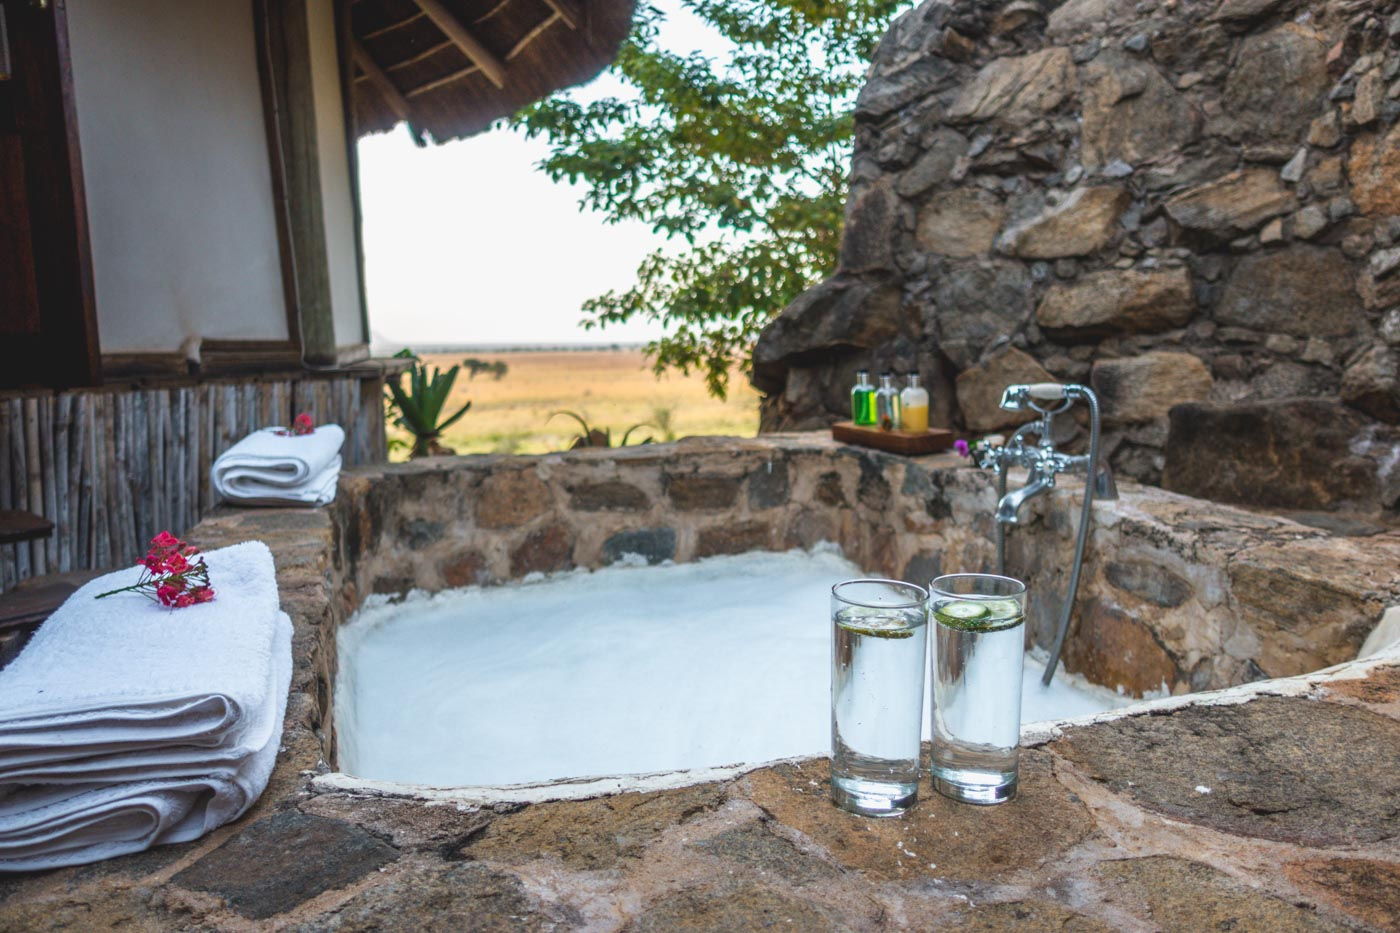 Eco-luxury at its best at Apoka Lodge in Kidepo National Park in Northern Uganda